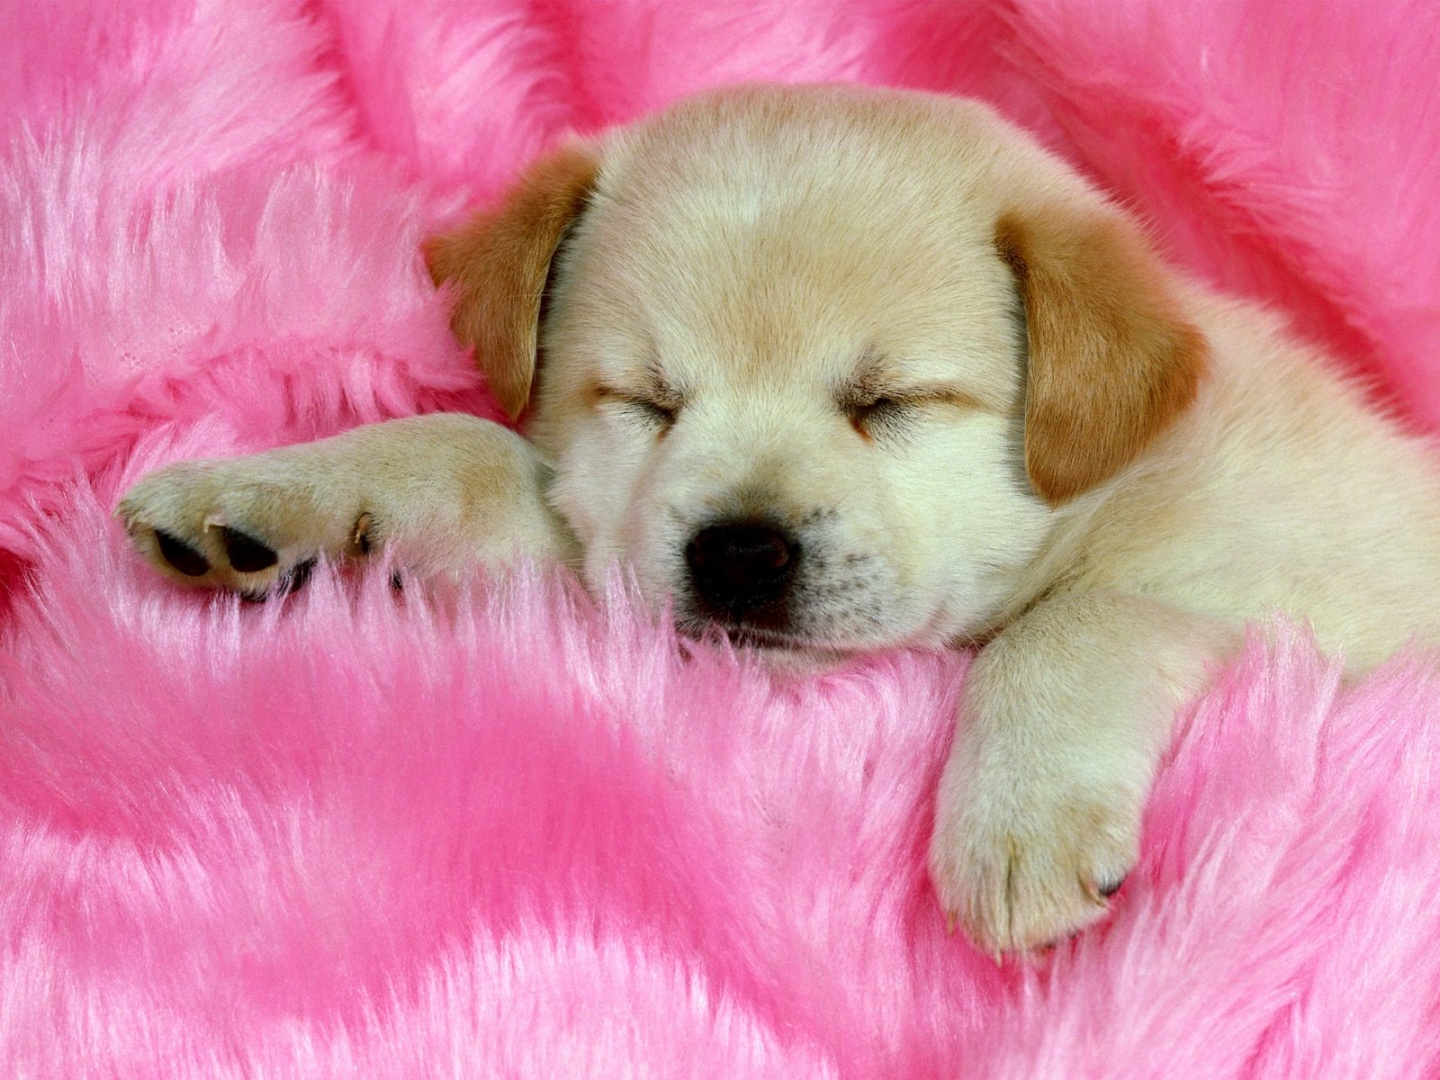 cute-labrador-retriever-puppy-sleeping-desktop-wallpaper